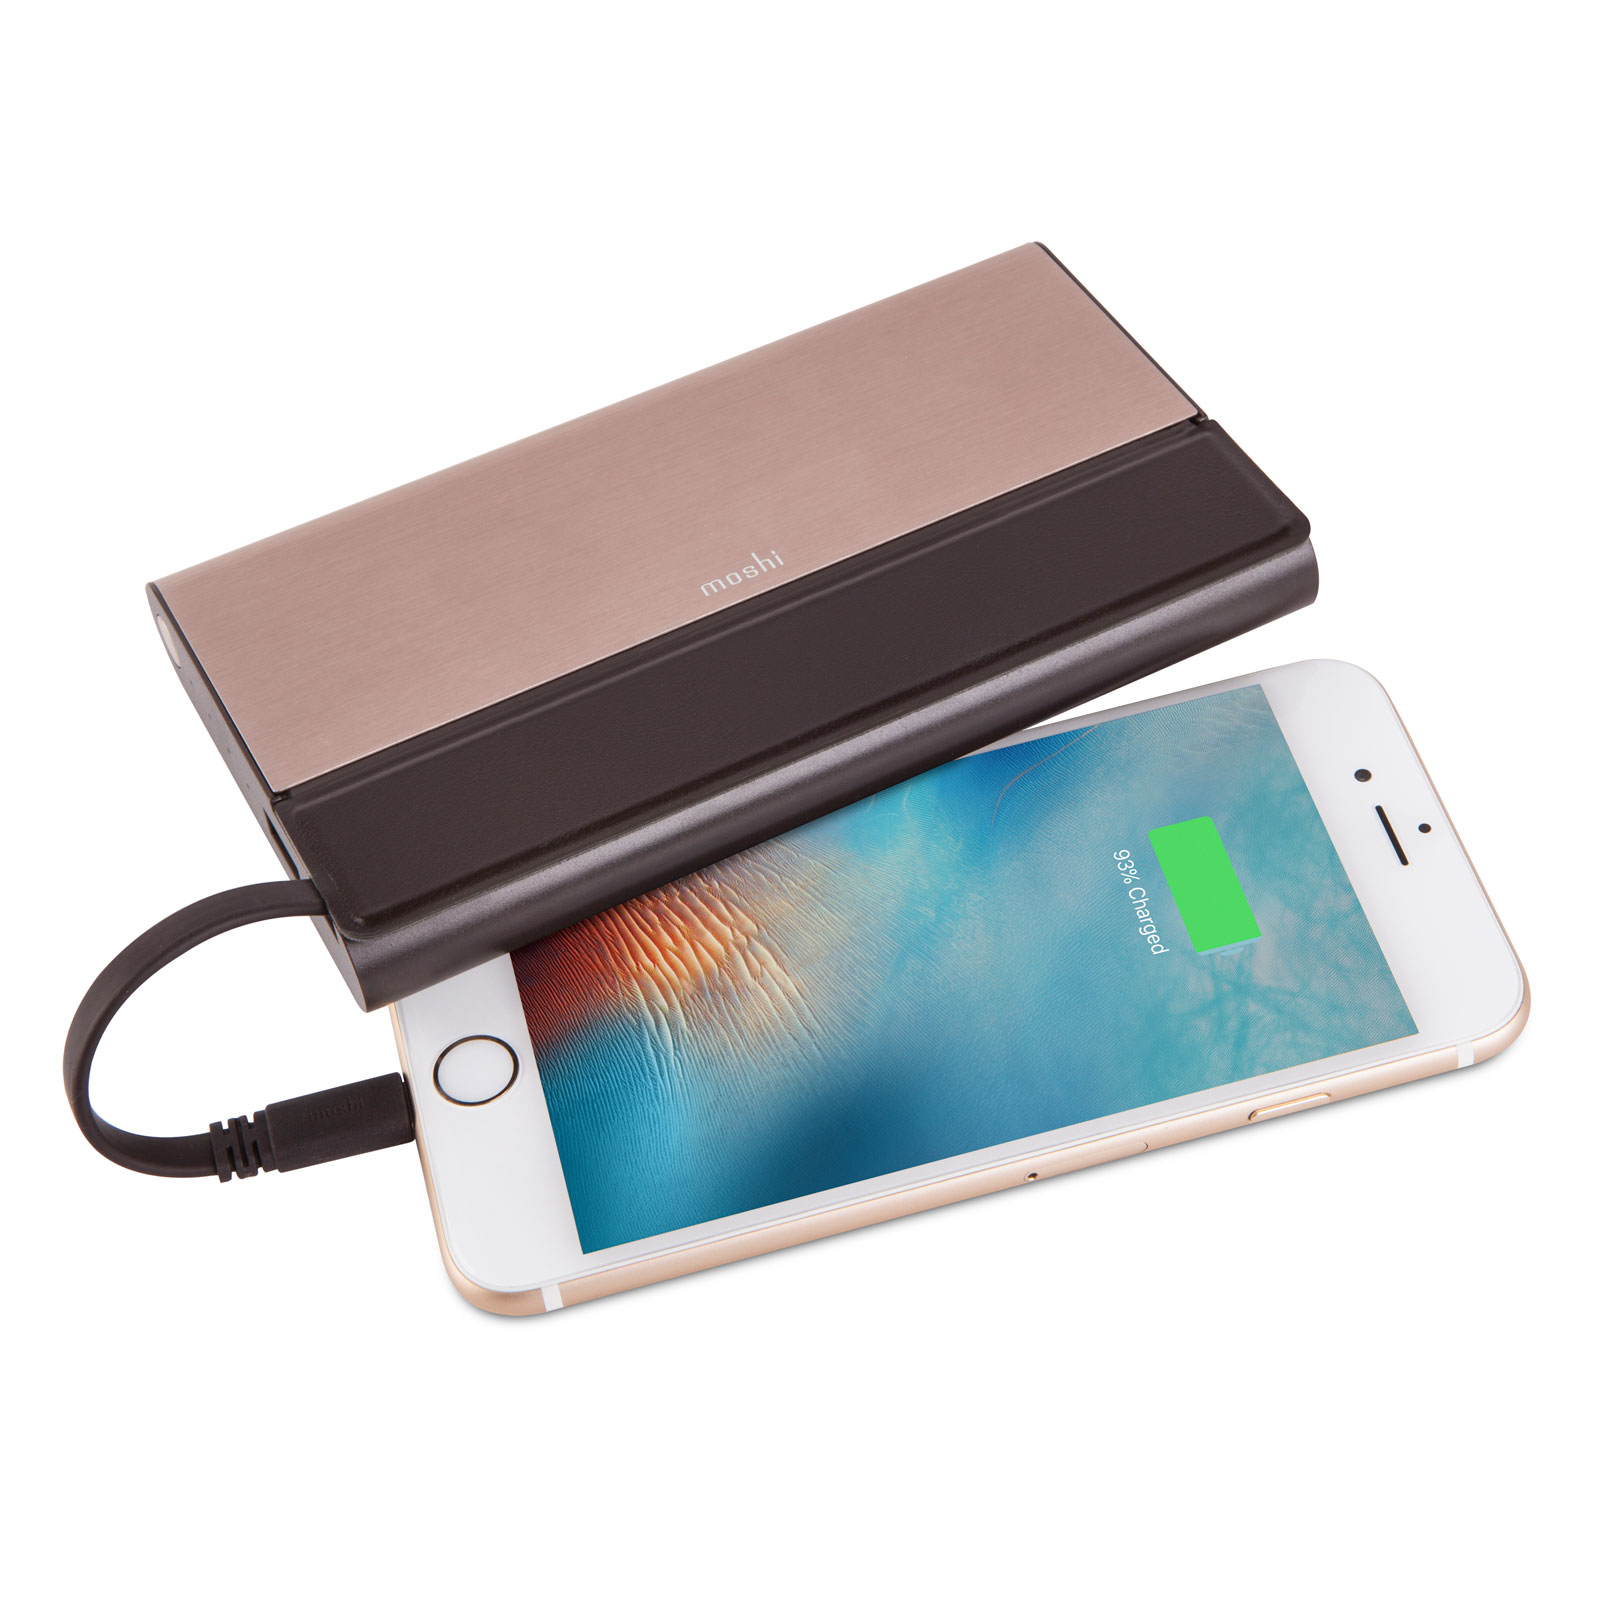 IonBank 10K Portable Battery-image